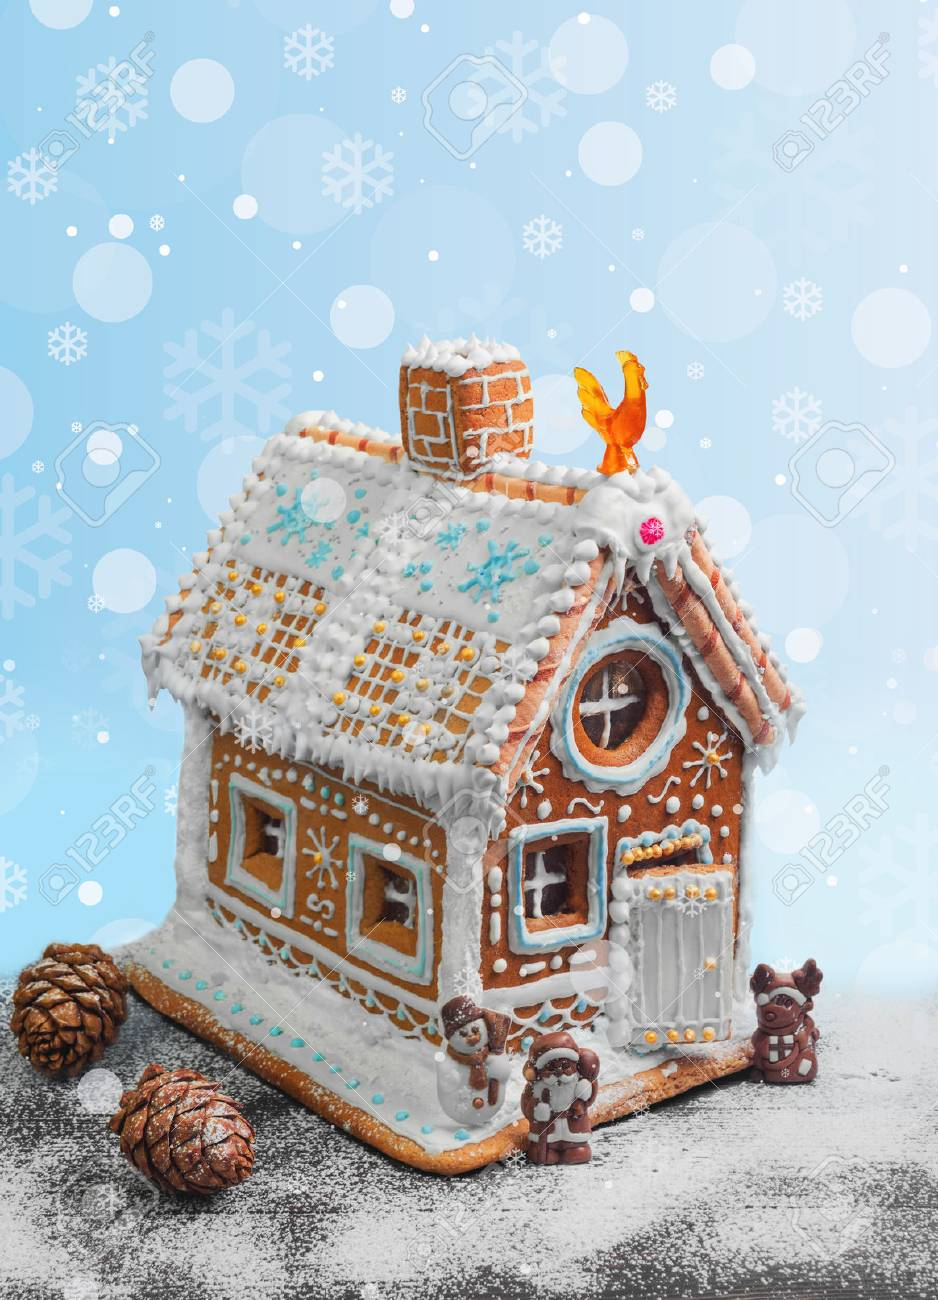 New Year Christmas Gingerbread House Decorated With Icing Sugar